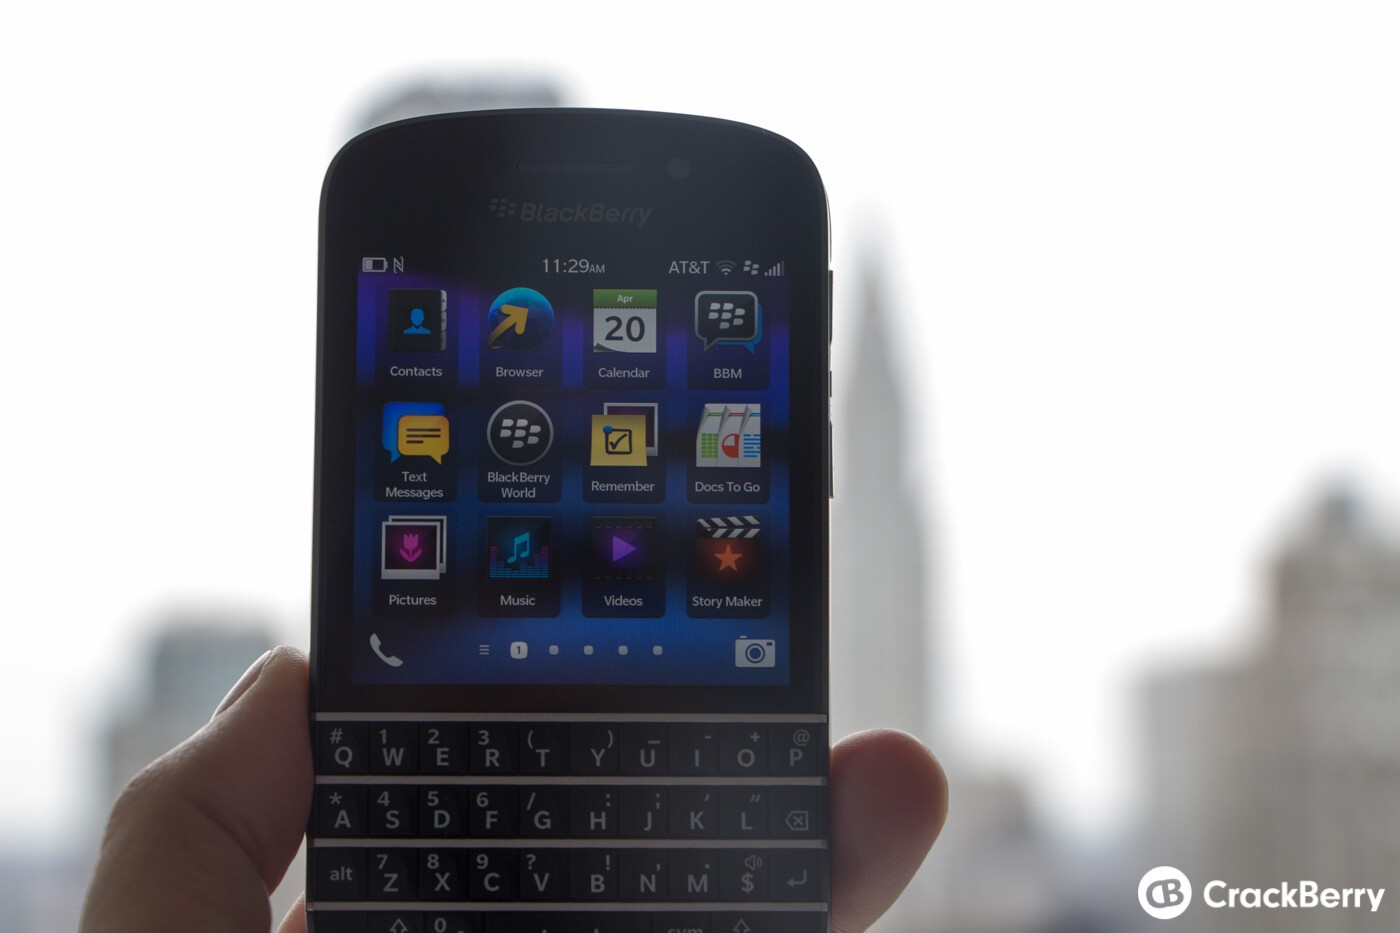 Comparing cloud services on the BlackBerry Q10